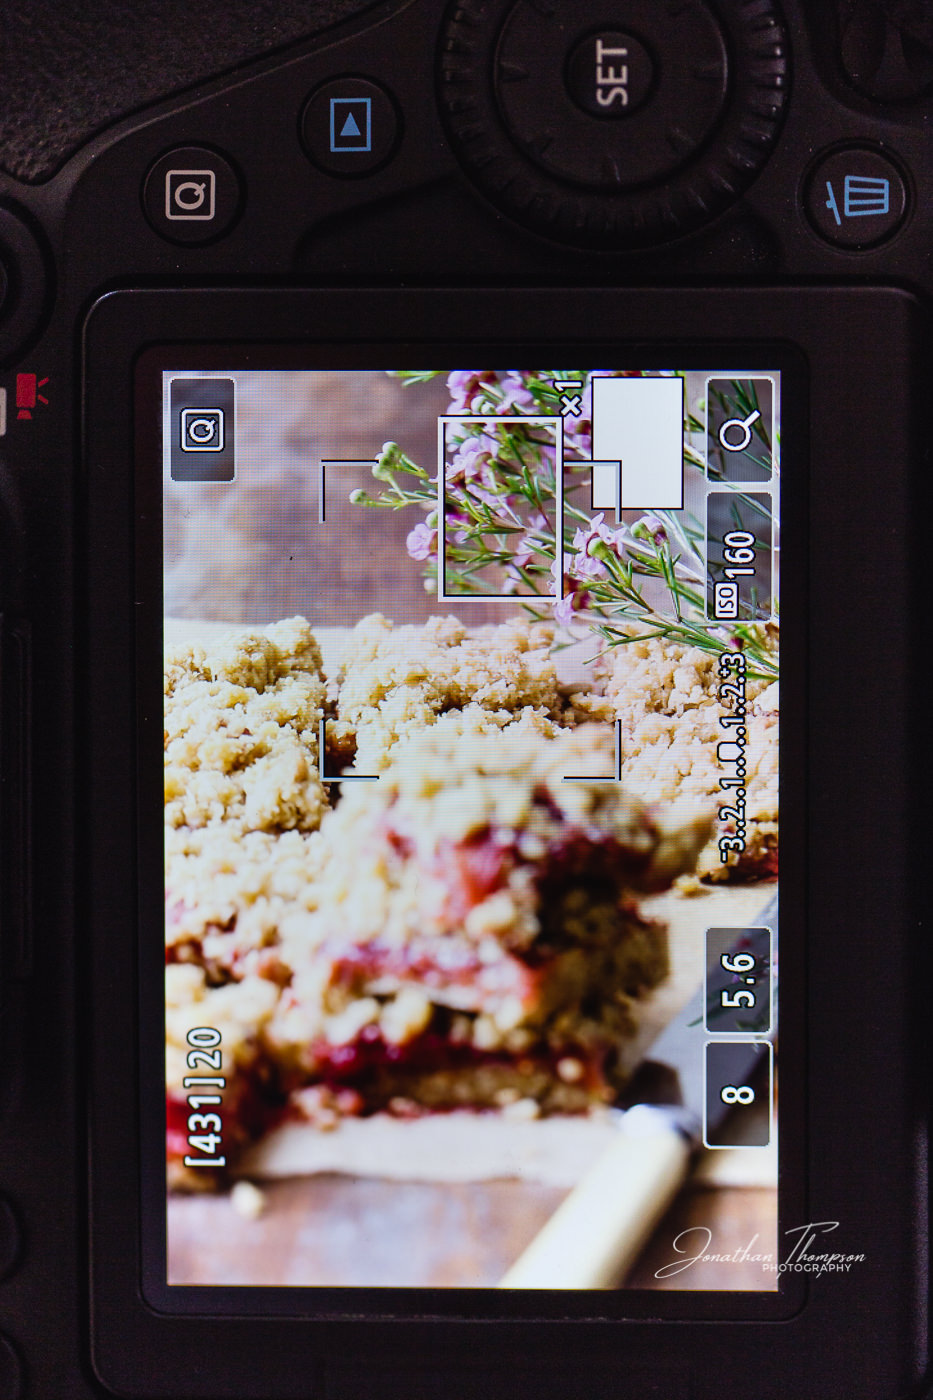 Back of Canon camera showing how using live view helps to gain sharp focus in food photography